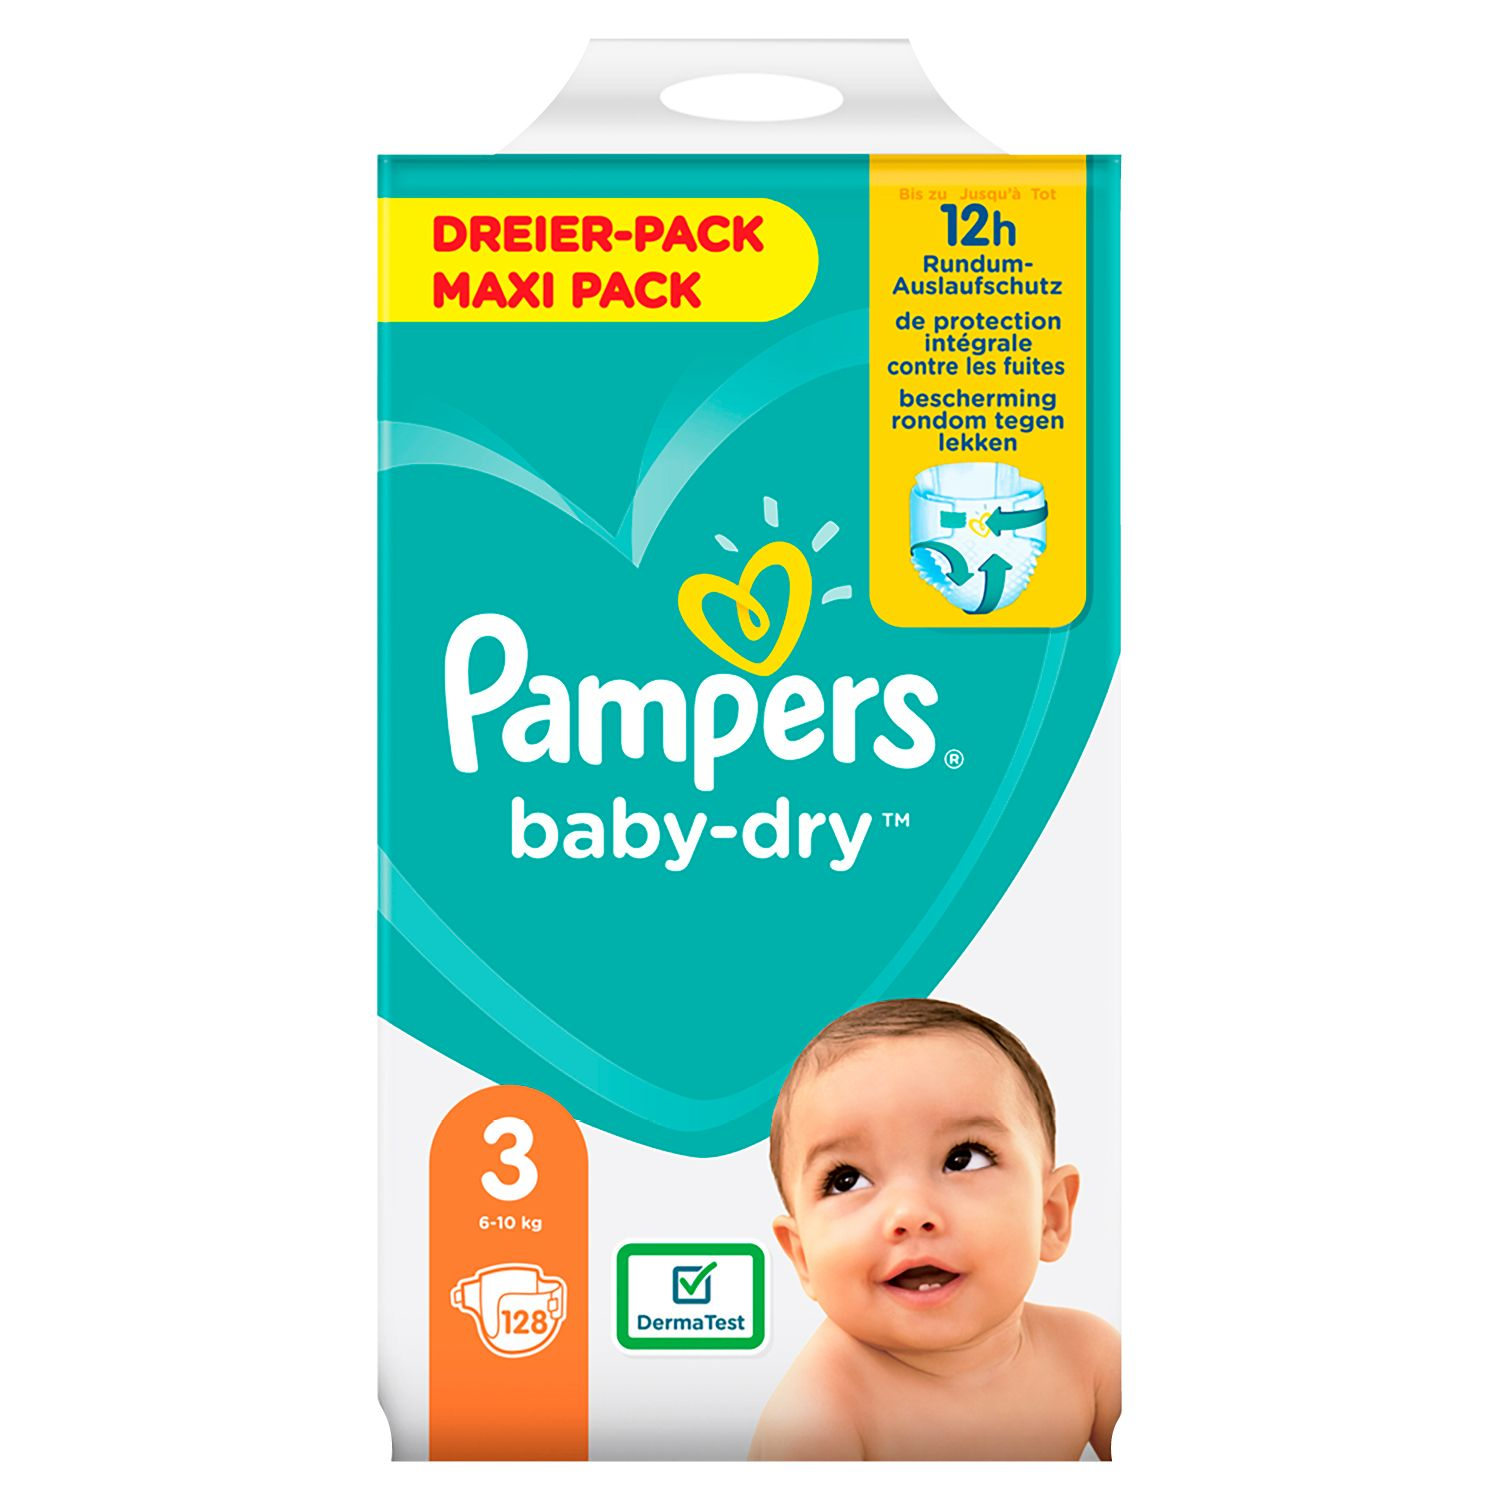 Pampers® baby-dry™*